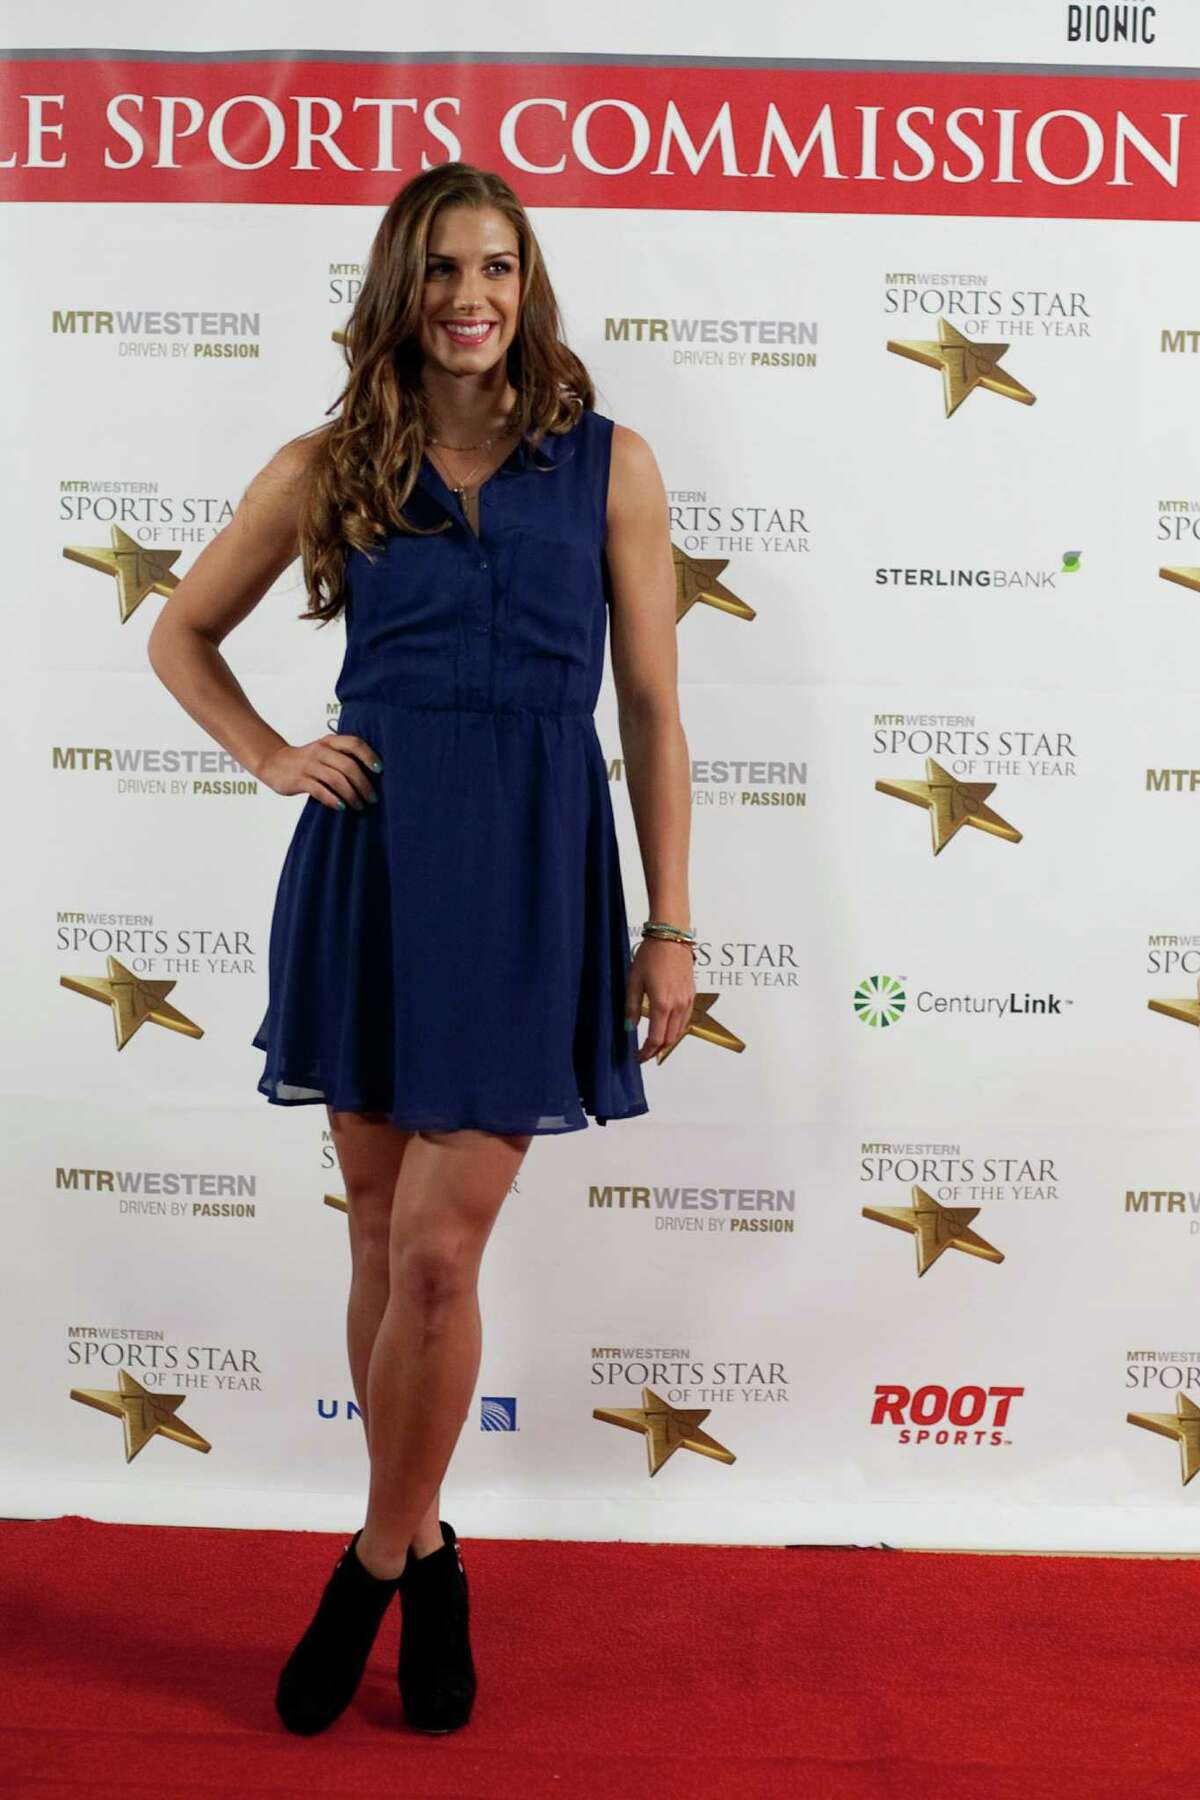 Soccer player Alex Morgan pauses on the red carpet during the 78th annual Sports Star of the Year awards at Benaroya Hall on Friday, January 25, 2013.